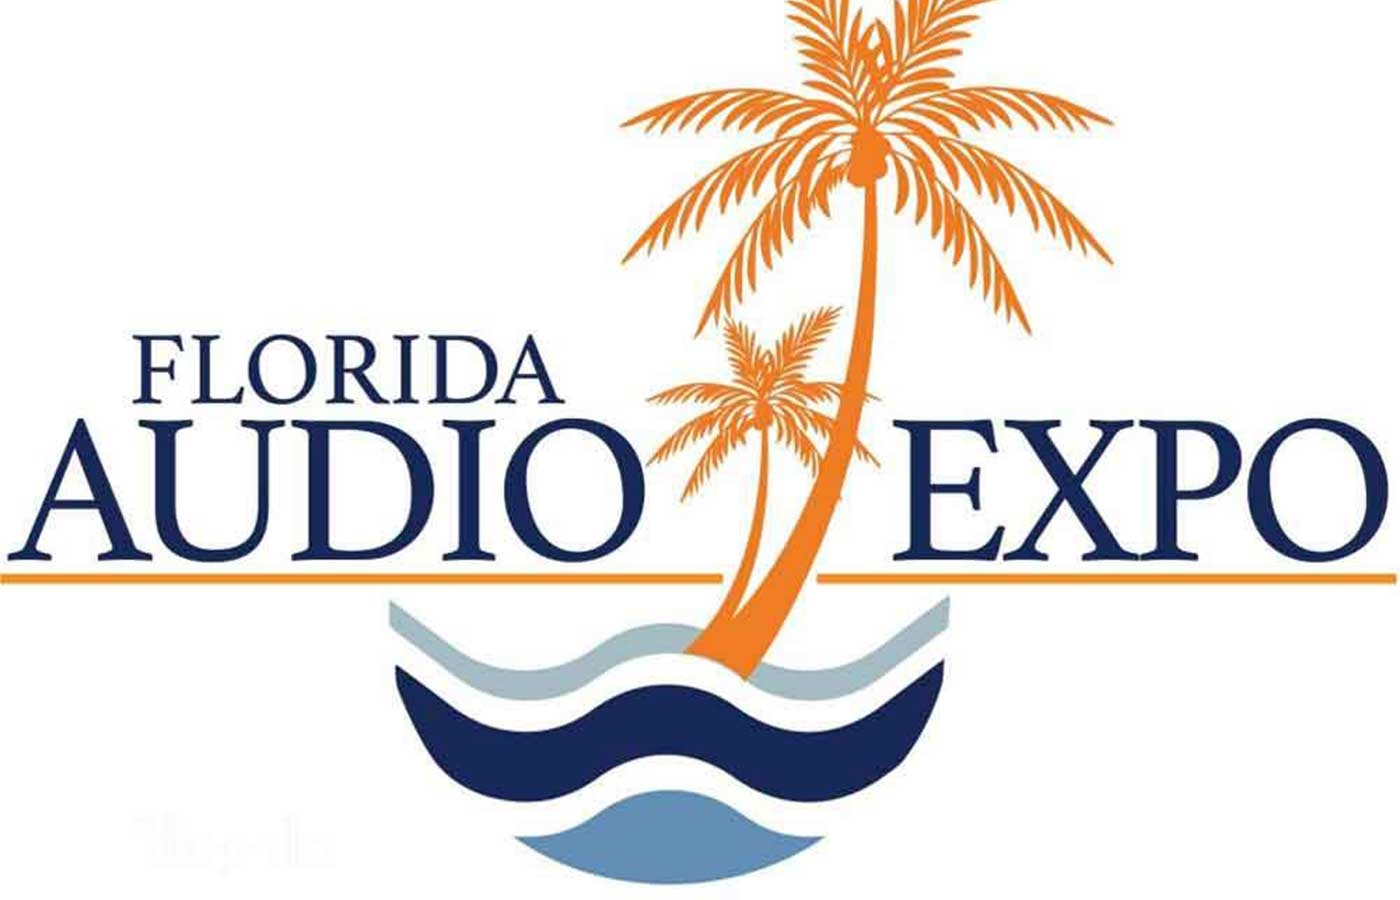 Florida Audio Show 2020